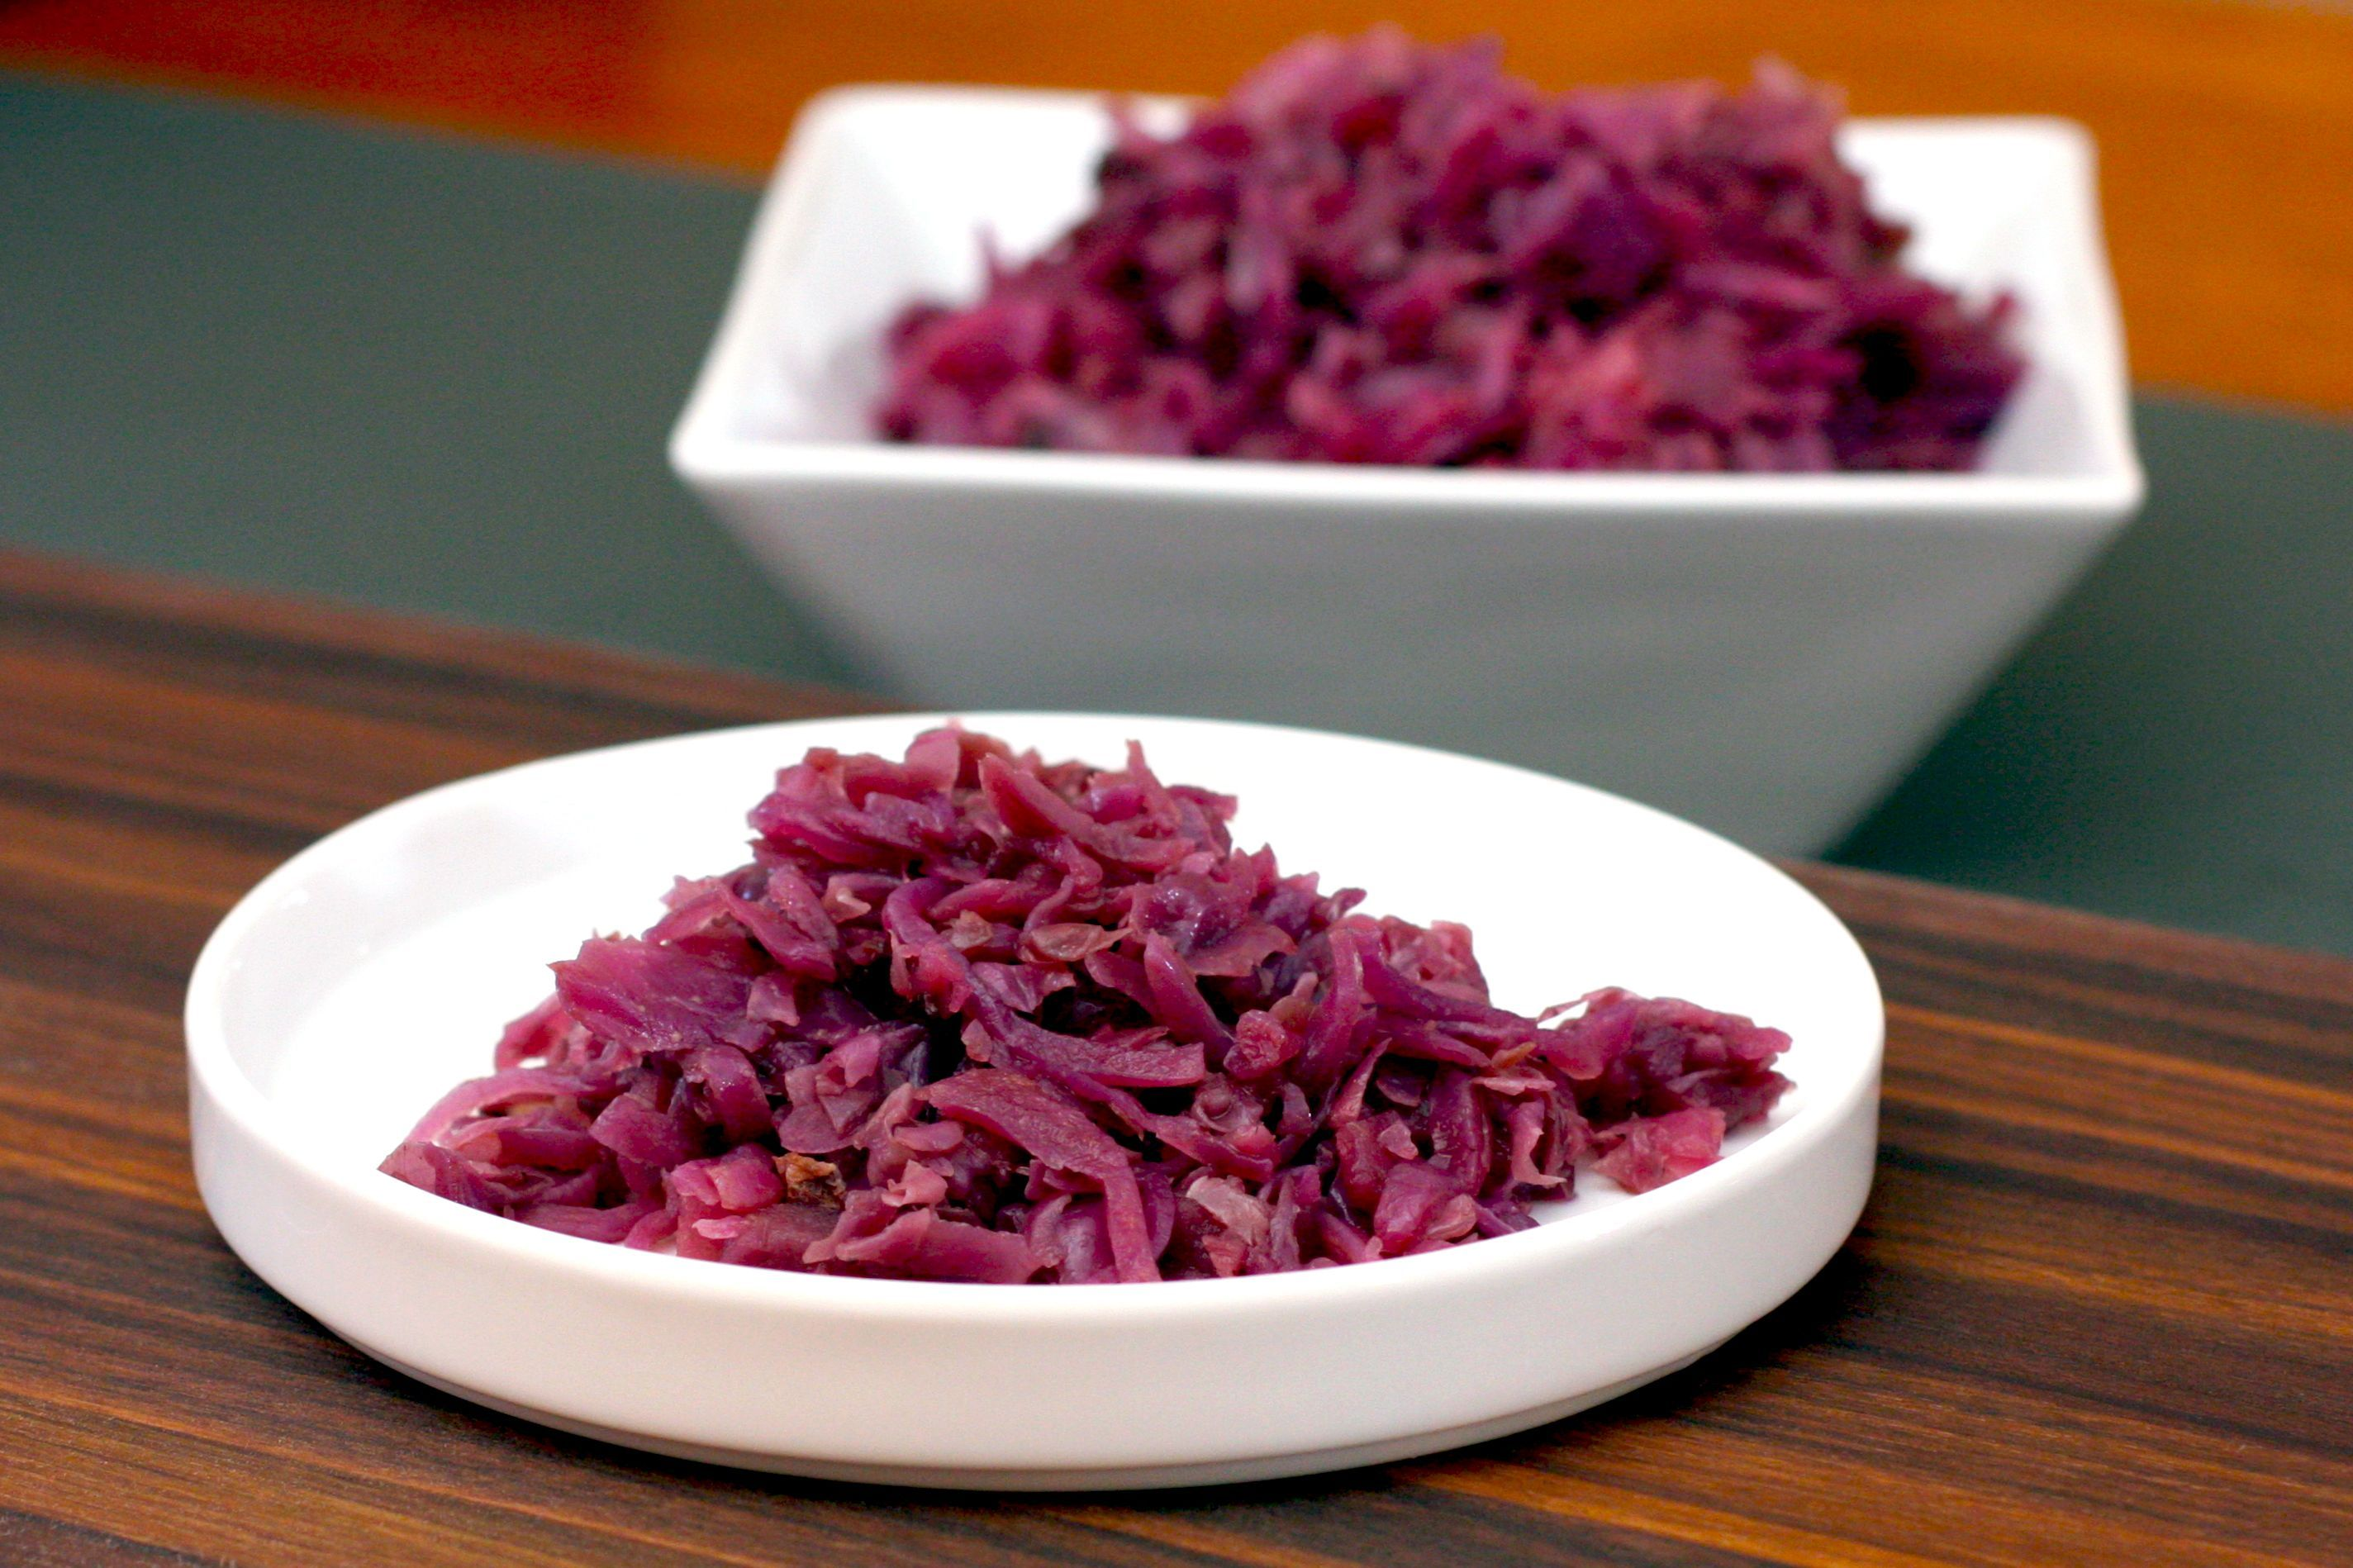 This red cabbage side dish is flavored with apples, bacon, and red wine. Garlic, red onions, and optional caraway seeds are among the ingredients.